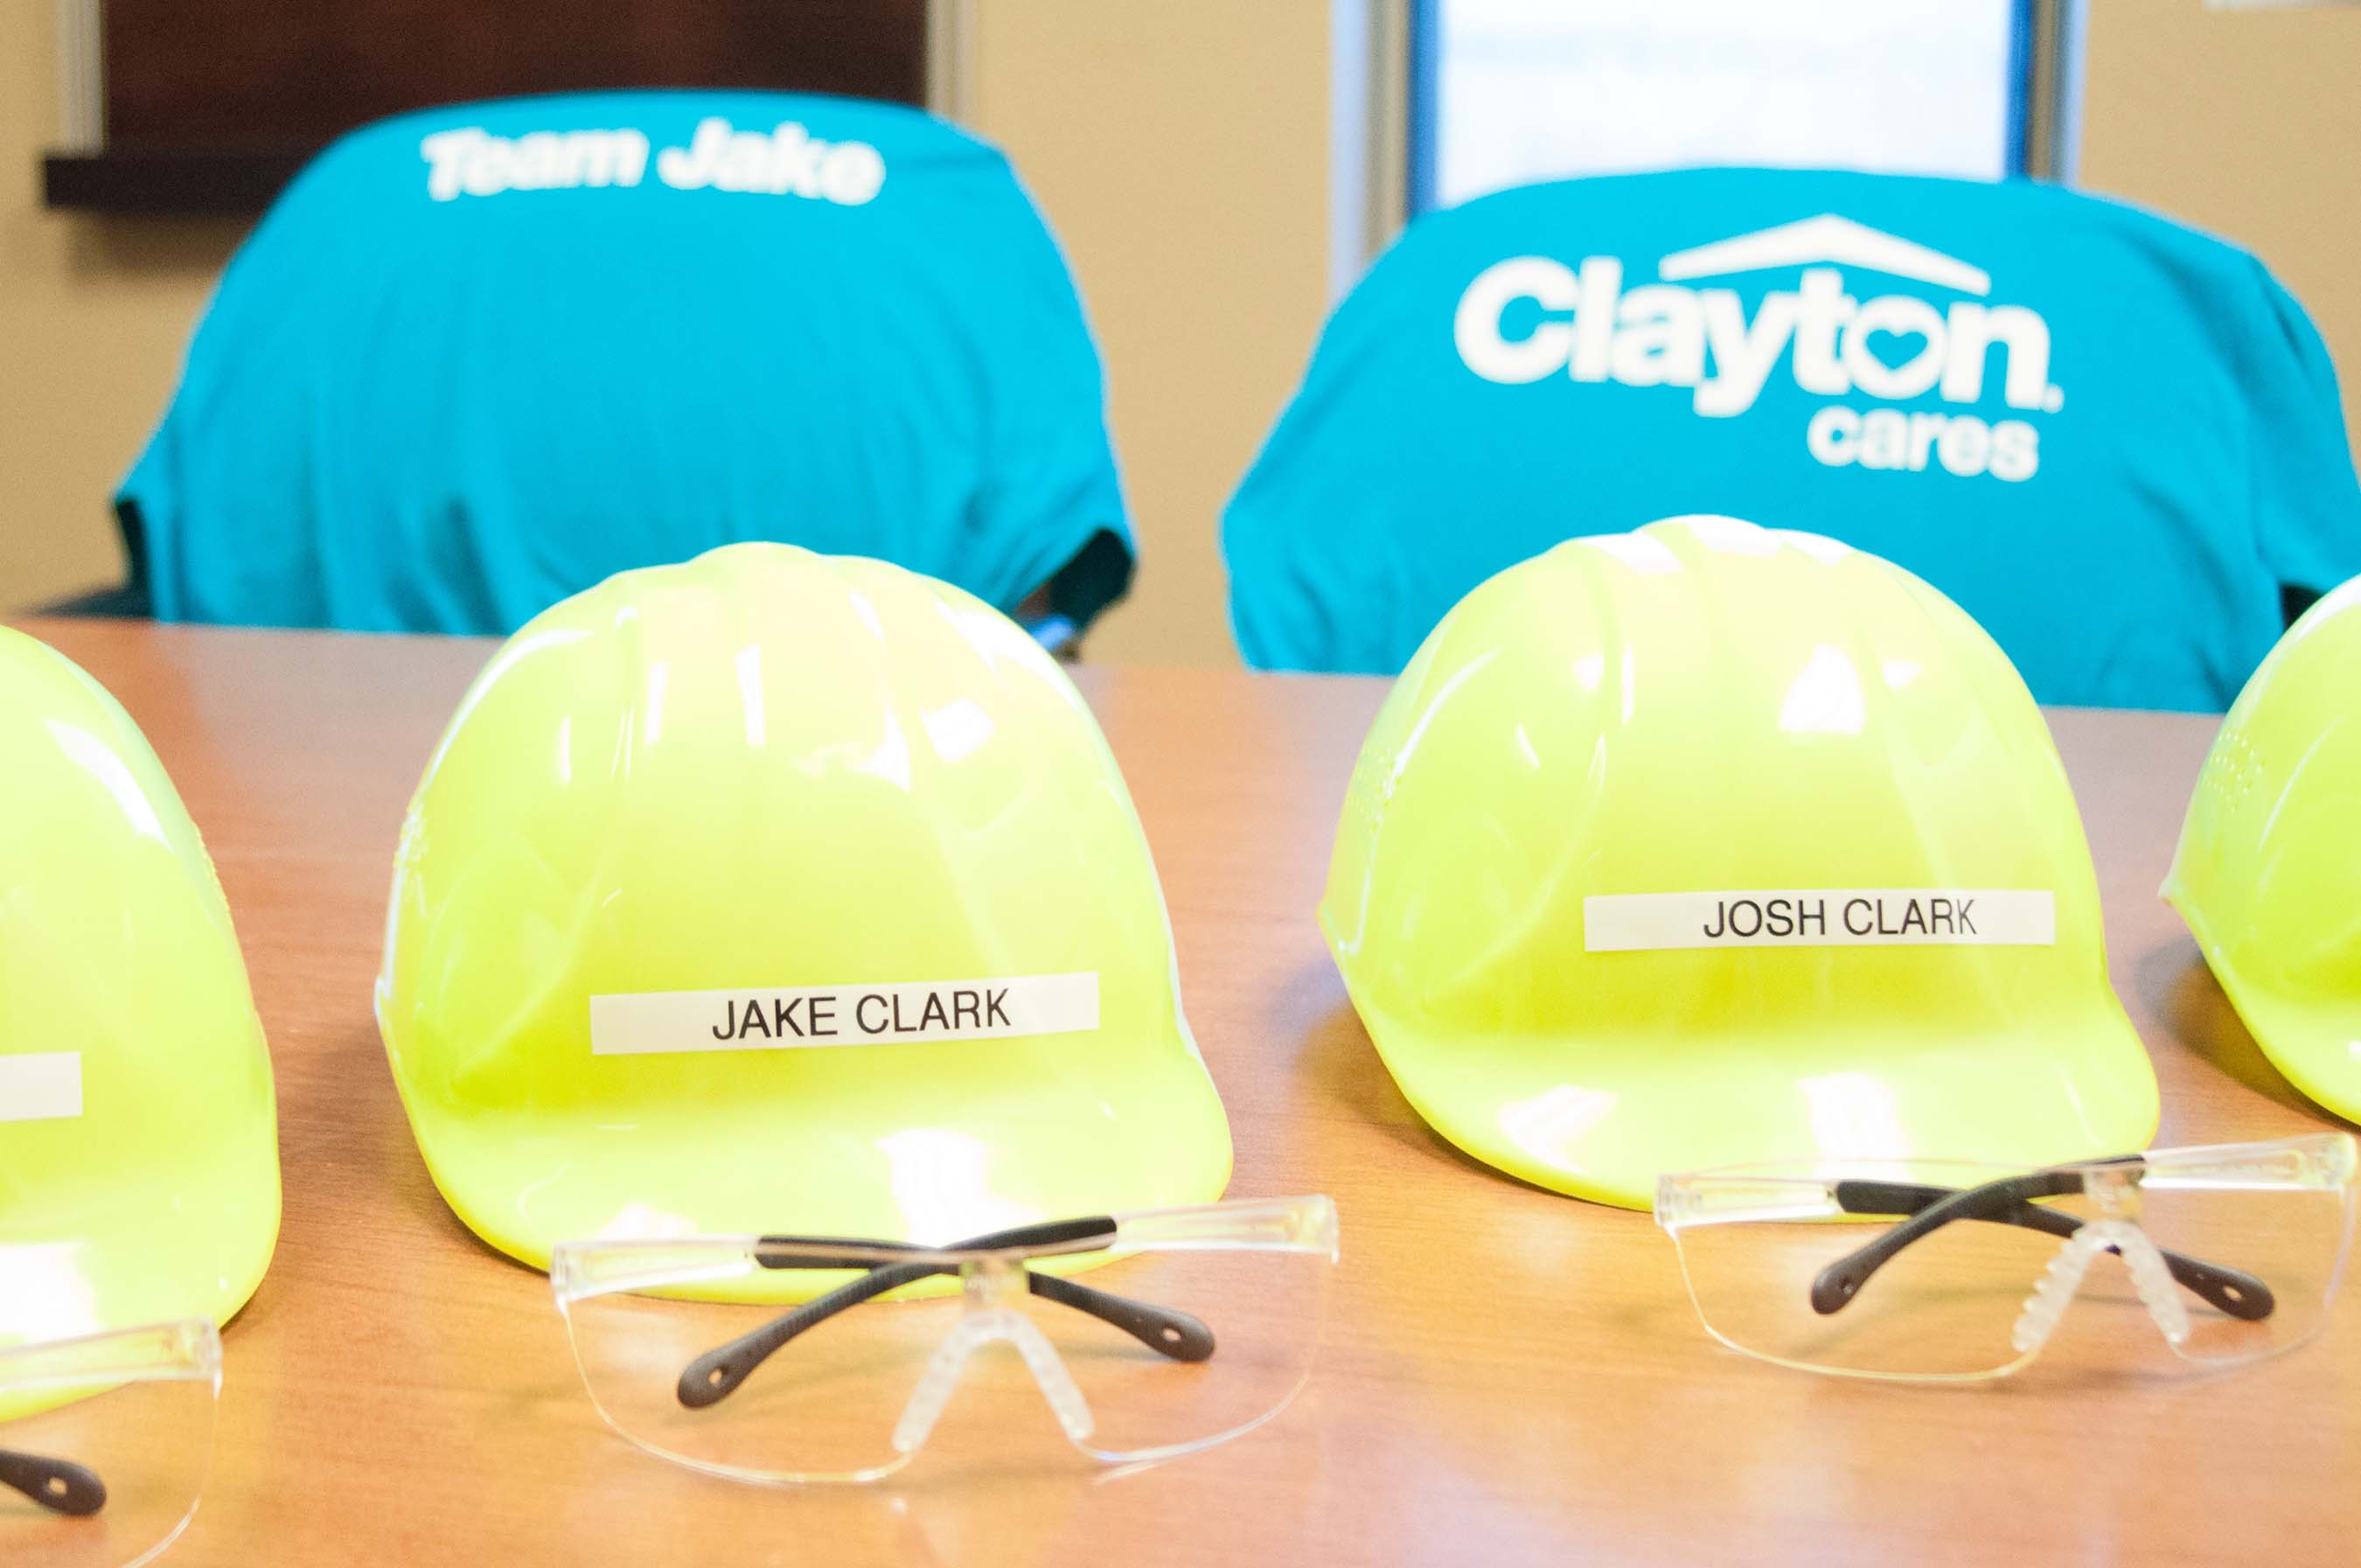 Jake and his family received personalized safety helmets and t-shirts to enjoy their personalized visit to the Clayton Bean Station building facility.